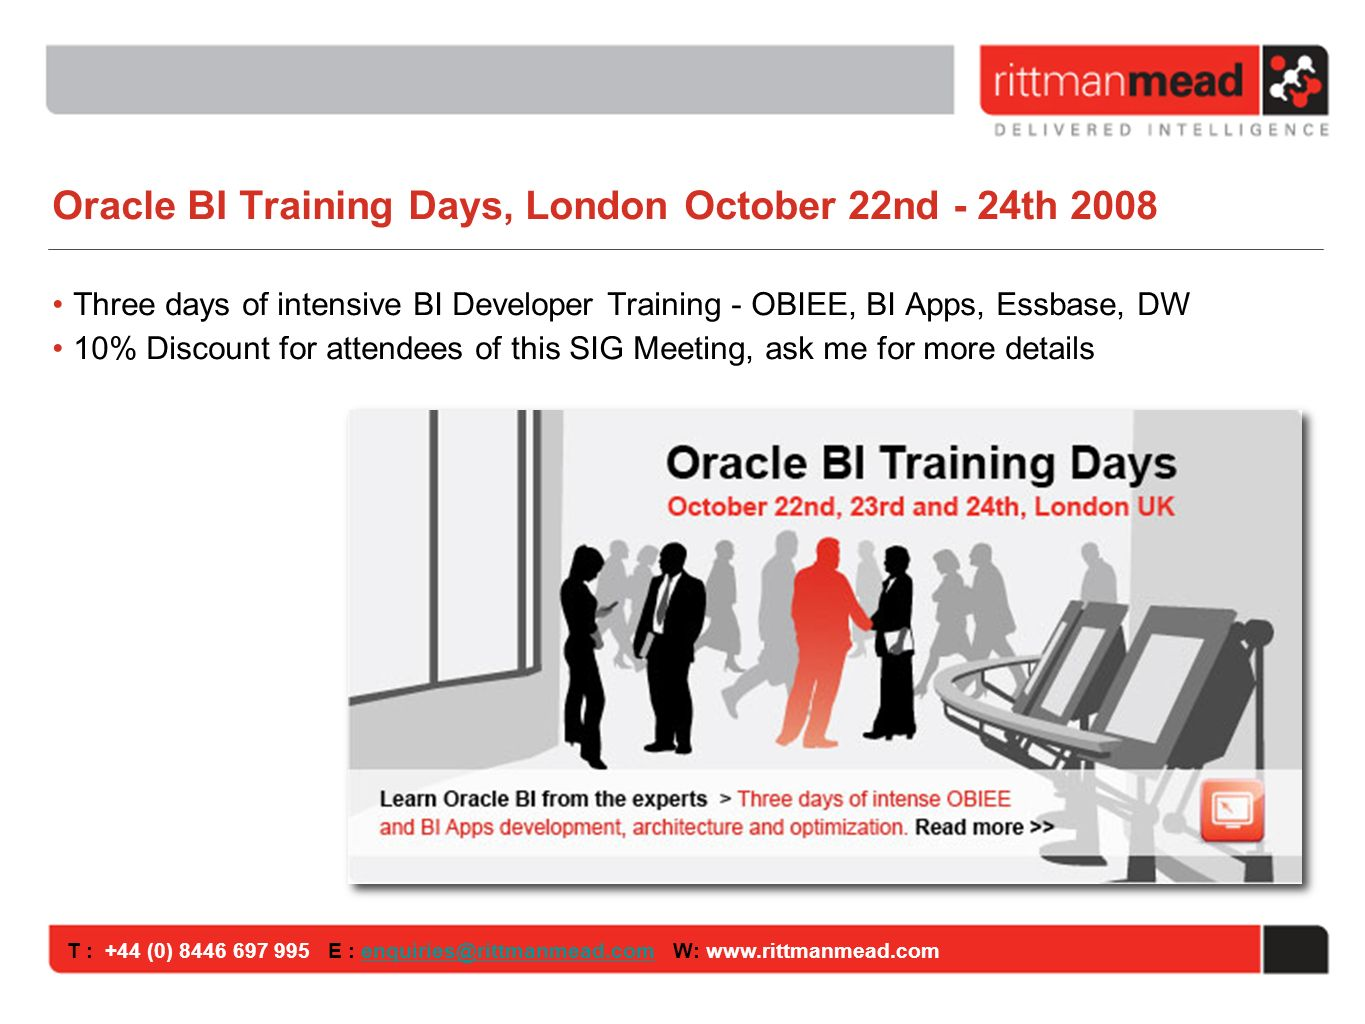 T : +44 (0) 8446 697 995 E : enquiries@rittmanmead.com W: www.rittmanmead.comenquiries@rittmanmead.com The Oracle BI Applications ETL Process Oracle BI Applications comes with a set of pre-defined ETL routines Currently written using Informatica, in future also provided via Oracle DI Extracts data from Oracle EBS, Peoplesoft, Siebel, SAP Universal Adapter available for non-supported sources Controlled and orchestrated using the Oracle Data Warehouse Administration Console